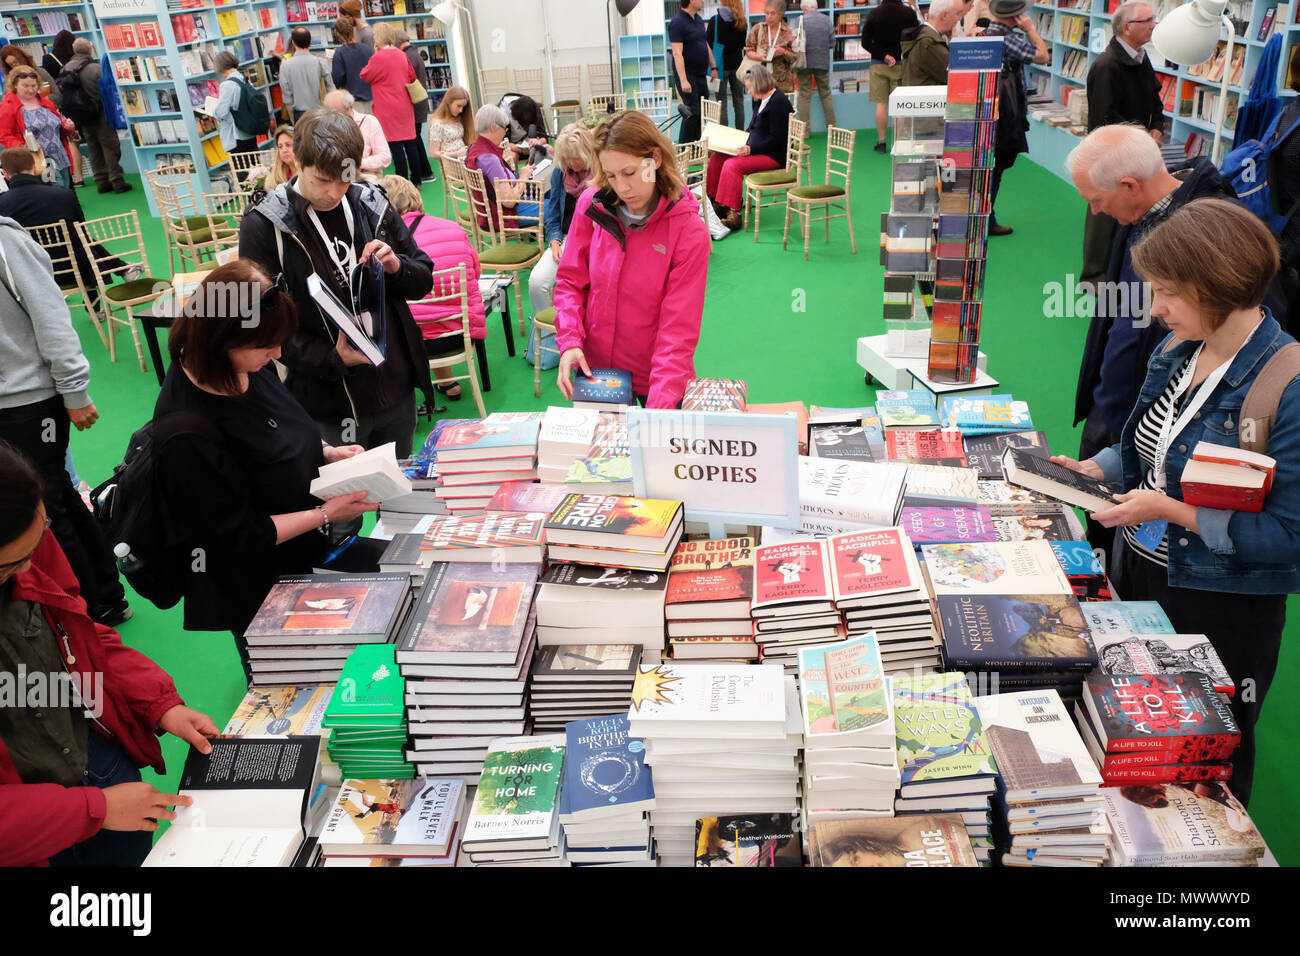 Hay Festival, Hay on Wye, UK. 2nd June 2018. Visitors enjoy a chance to browse the Signed Copies of new books in the Hay Festival bookshop at the start of a busy weekend at the Hay Festival  - Photo Steven May / Alamy Live News - Stock Image